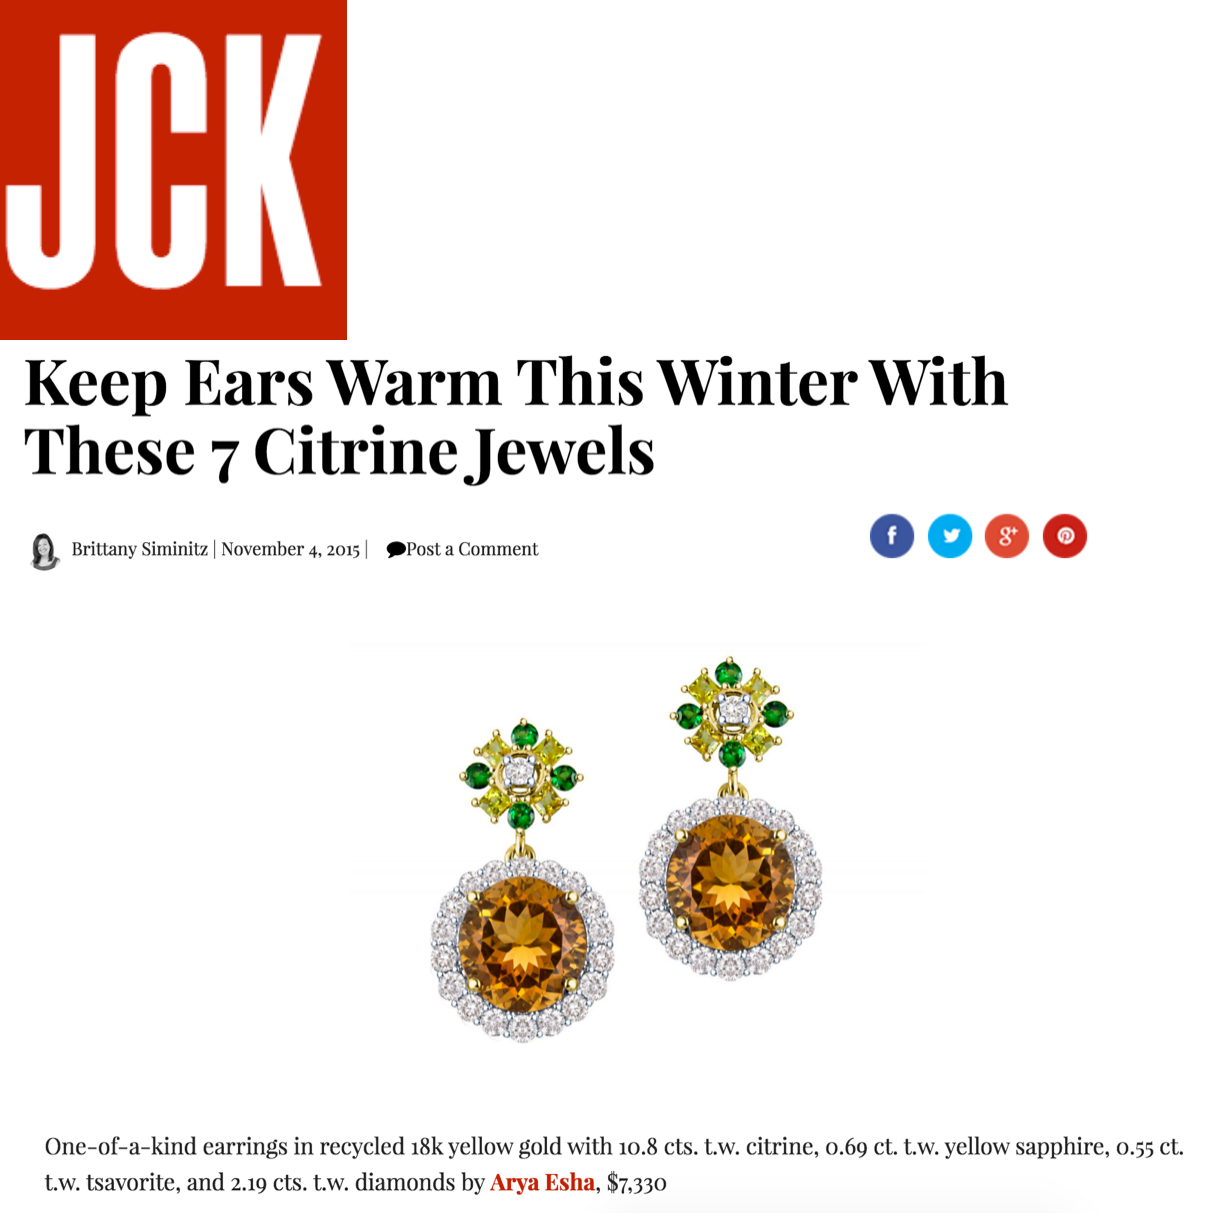 Arya Esha One-of-a-Kind Earrings chosen as top Citrine Jewels for Winter